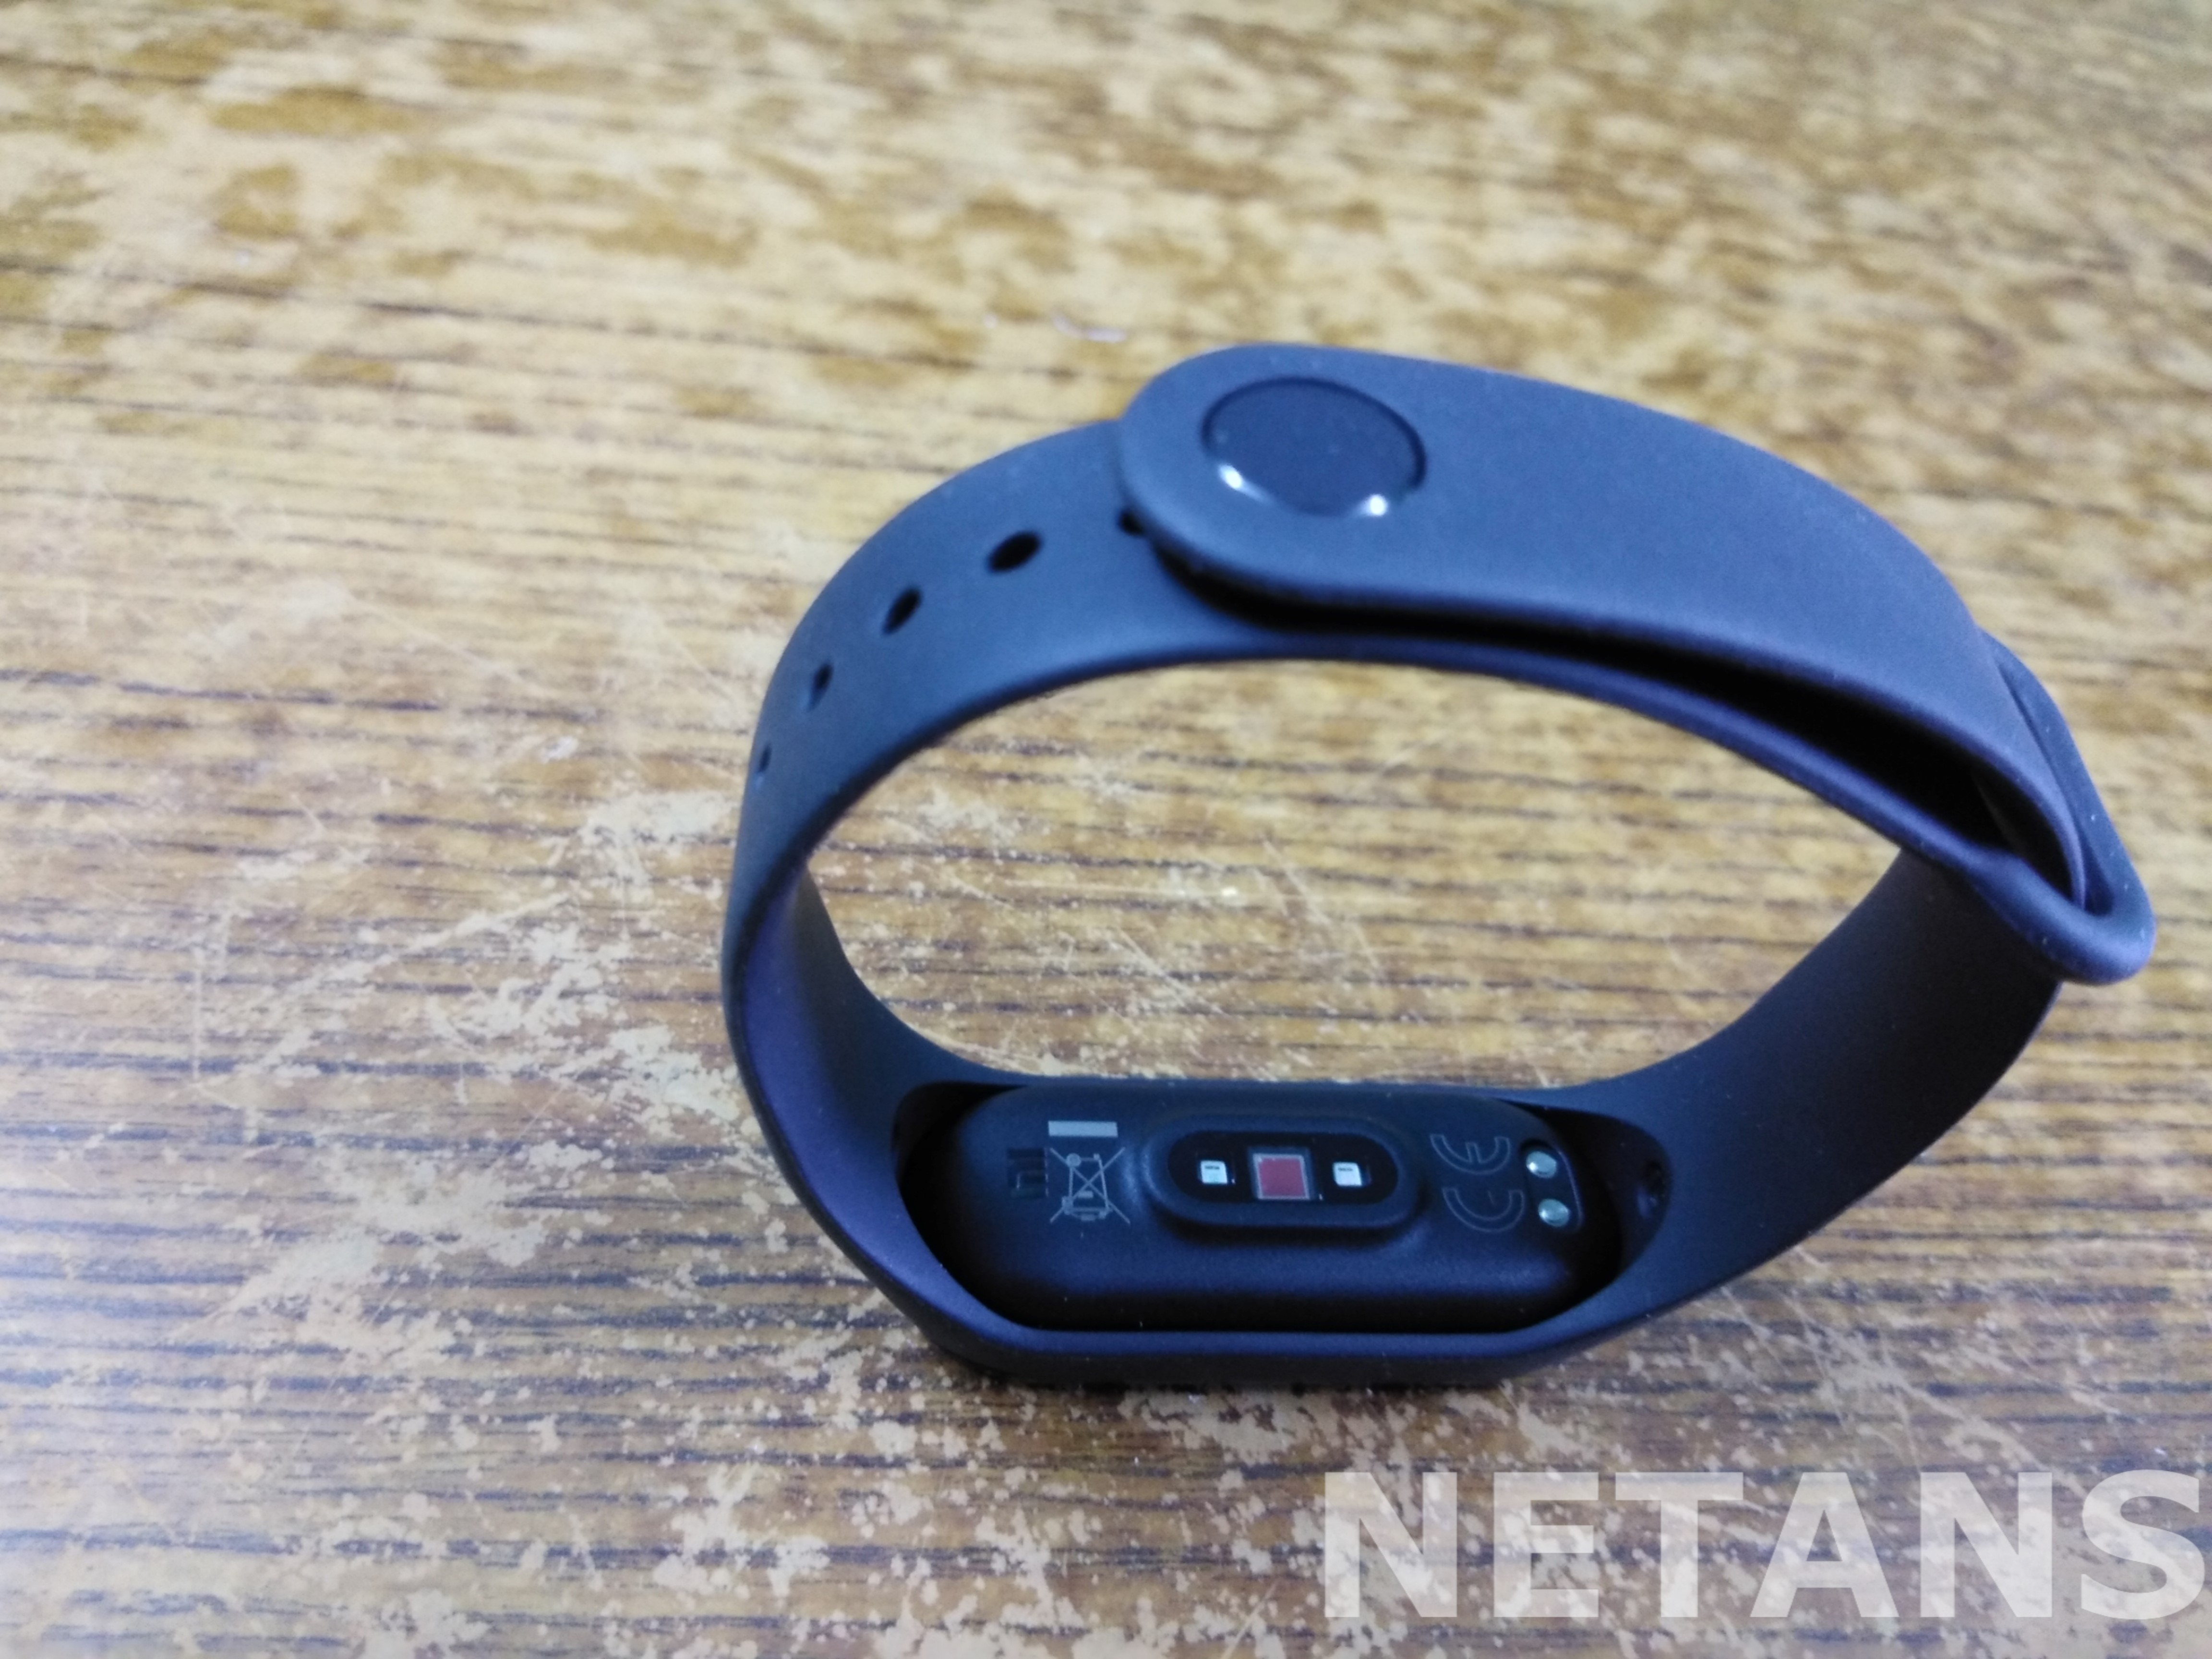 Mi Band 4 Review: Excellent fitness tracker you can bank upon